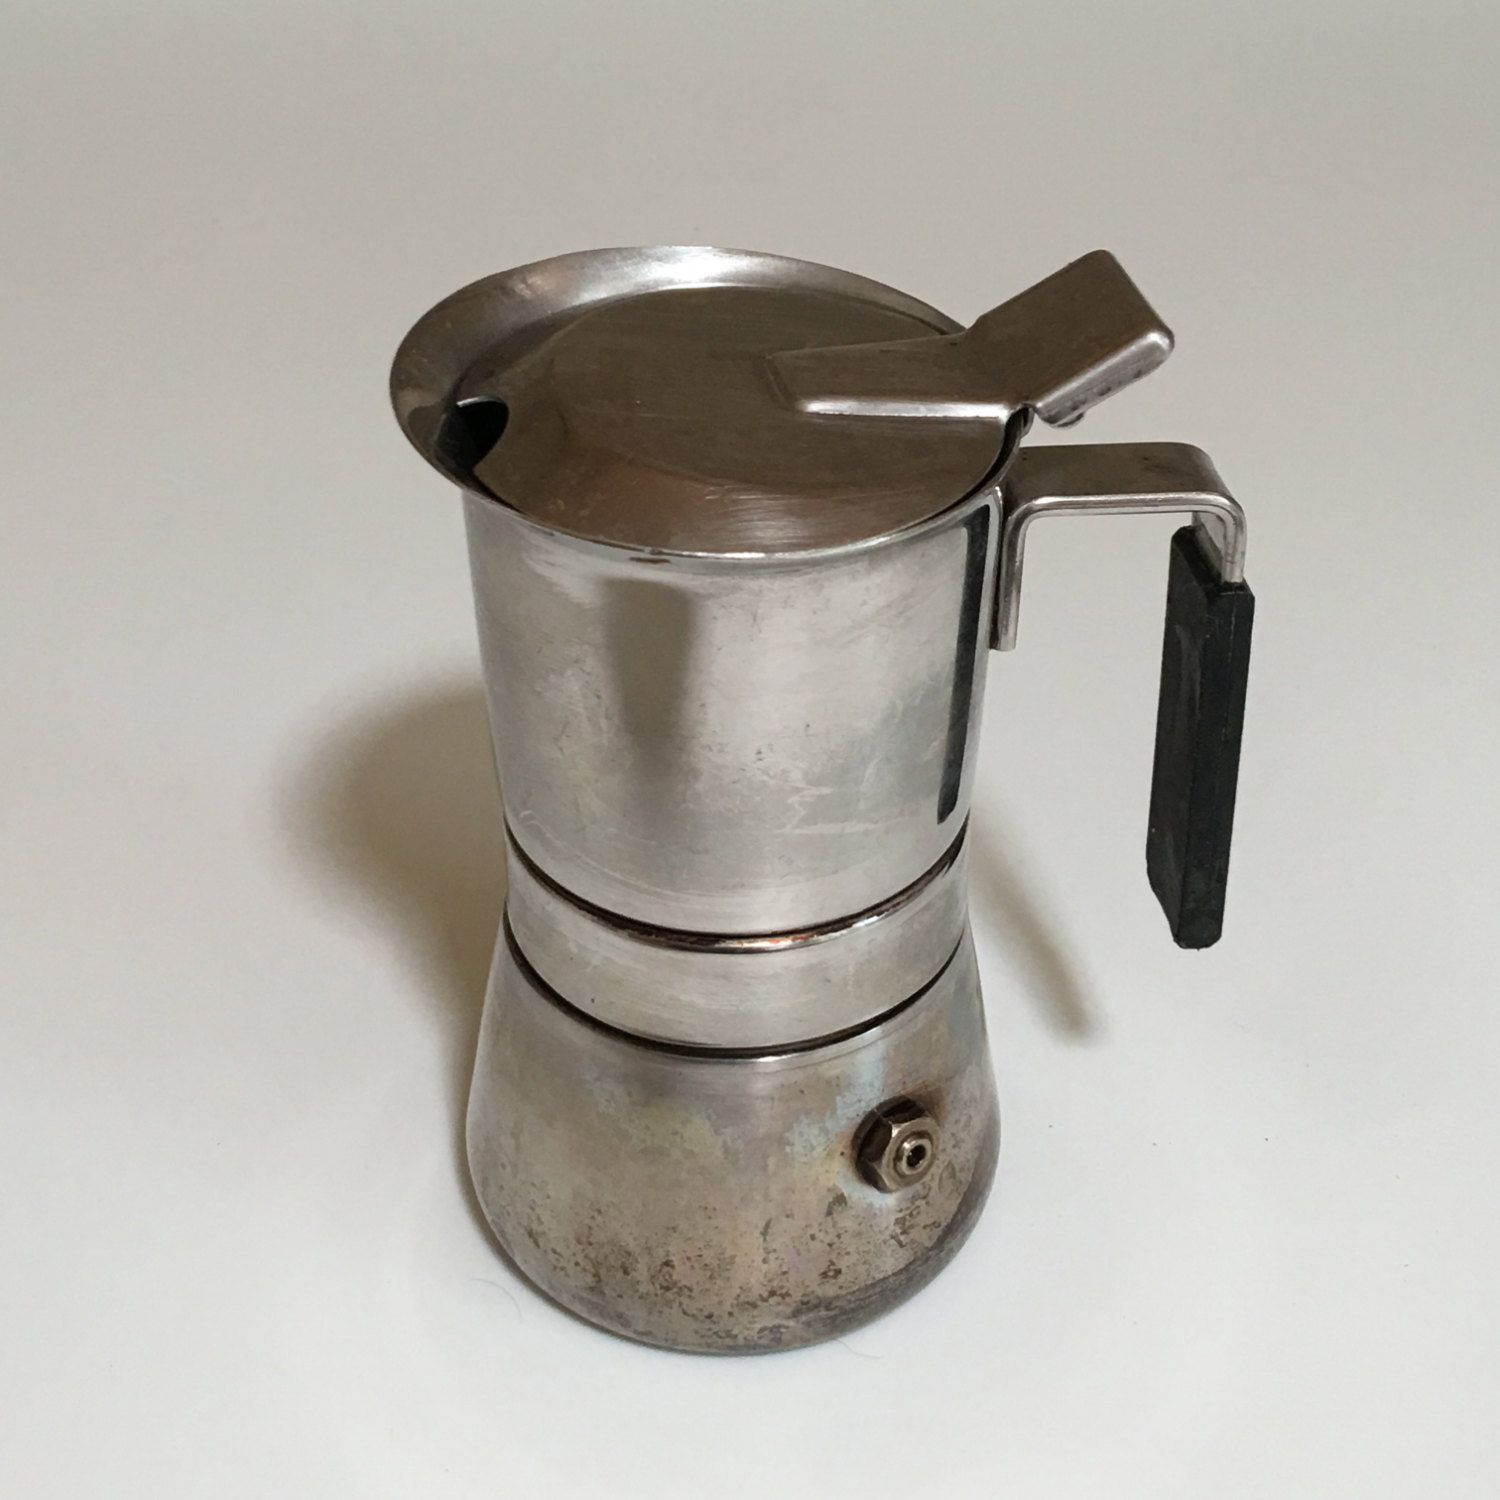 Pin On Vintage Vev Espresso Coffee Maker Stainless Steel 18 10 Italy